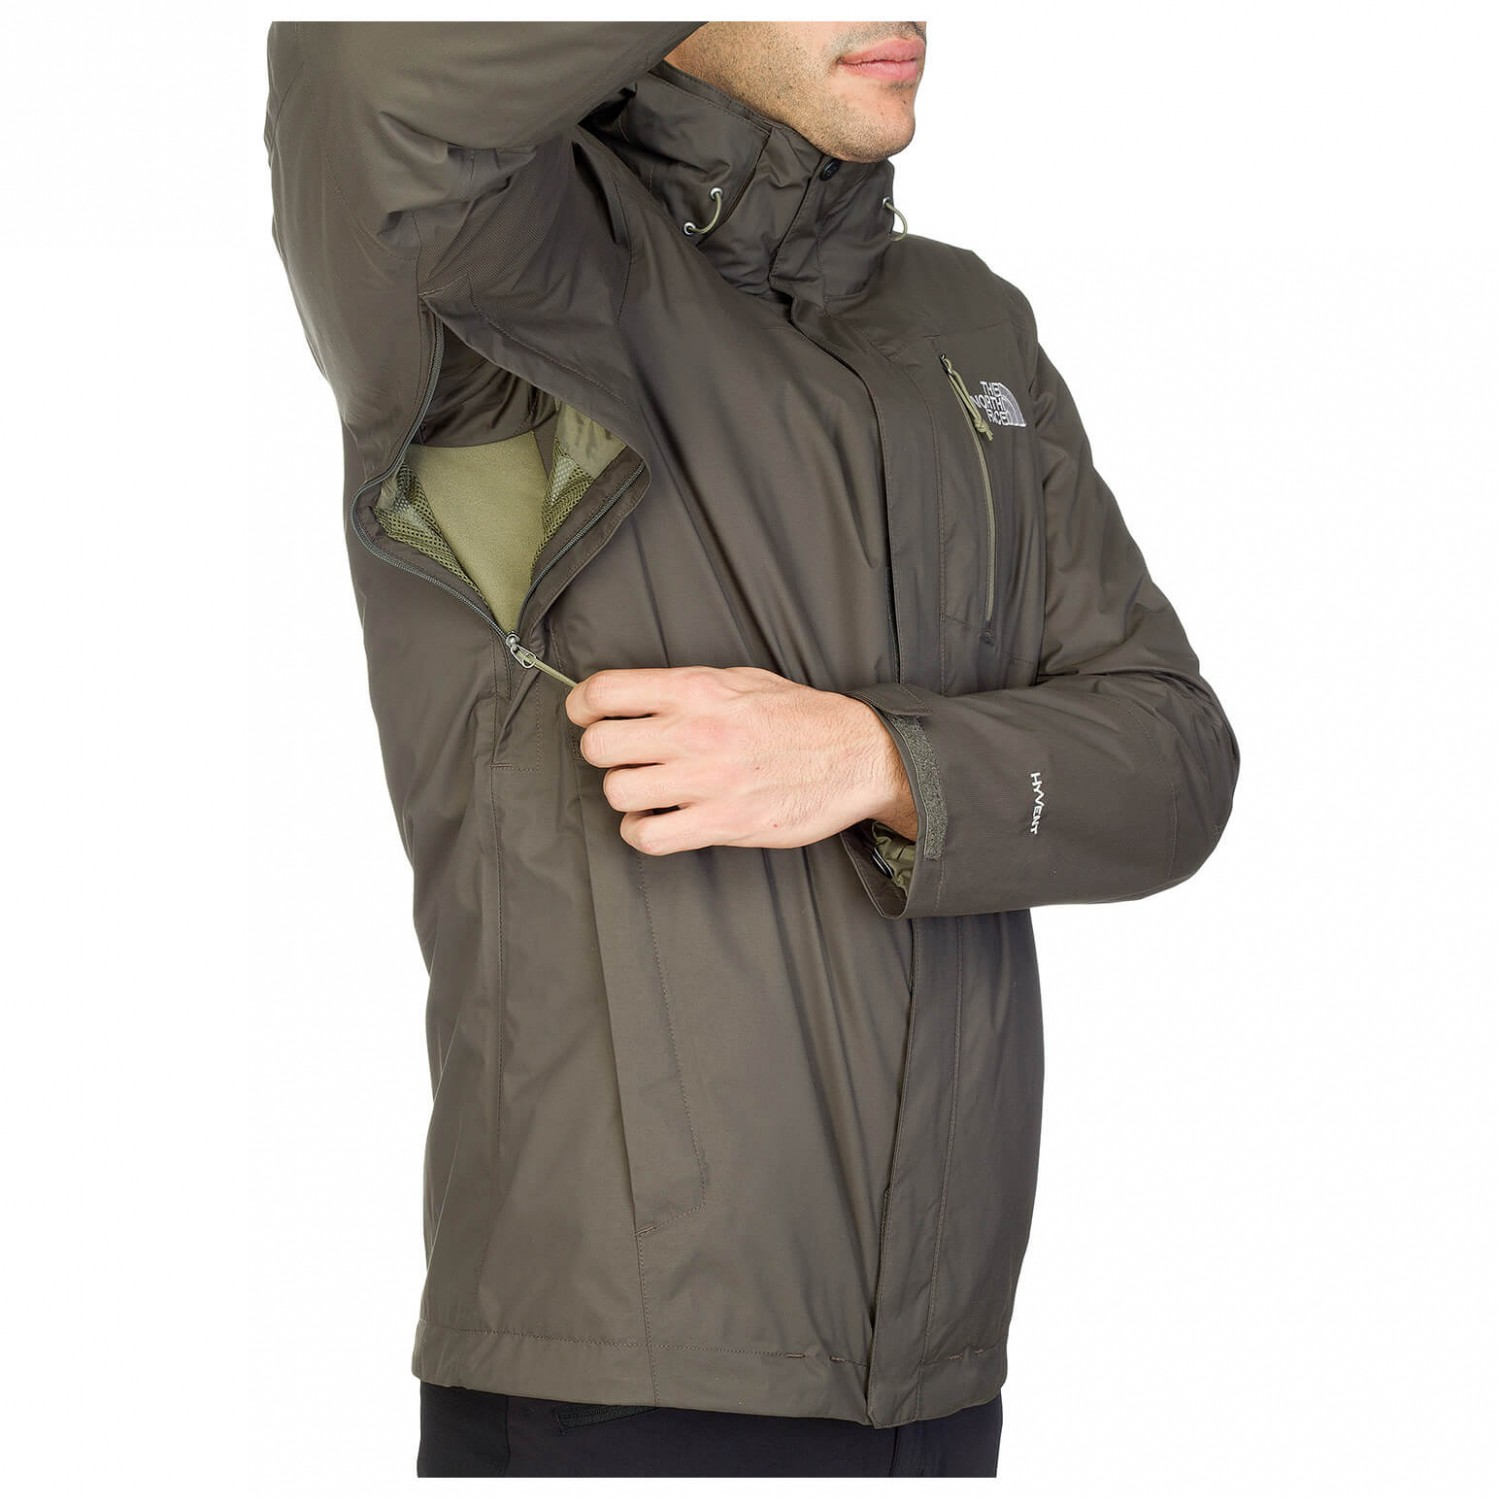 2e46f6463ec5 ... The North Face - Solaris Triclimate Jacket - 3-in-1 jacket ...